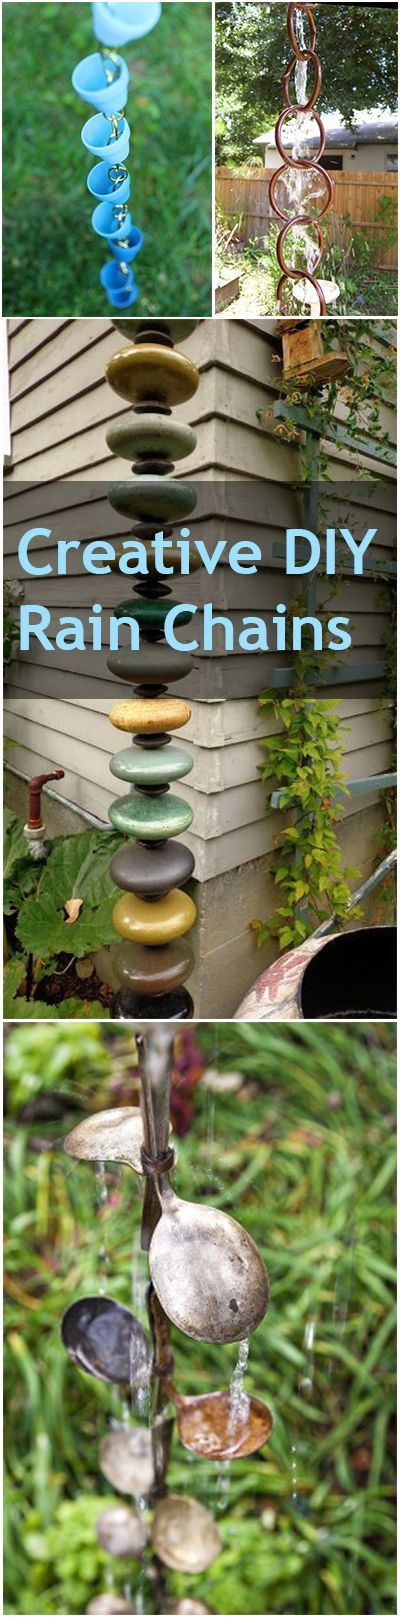 Creative DIY Rain Chains - perfect for rainy environments!!